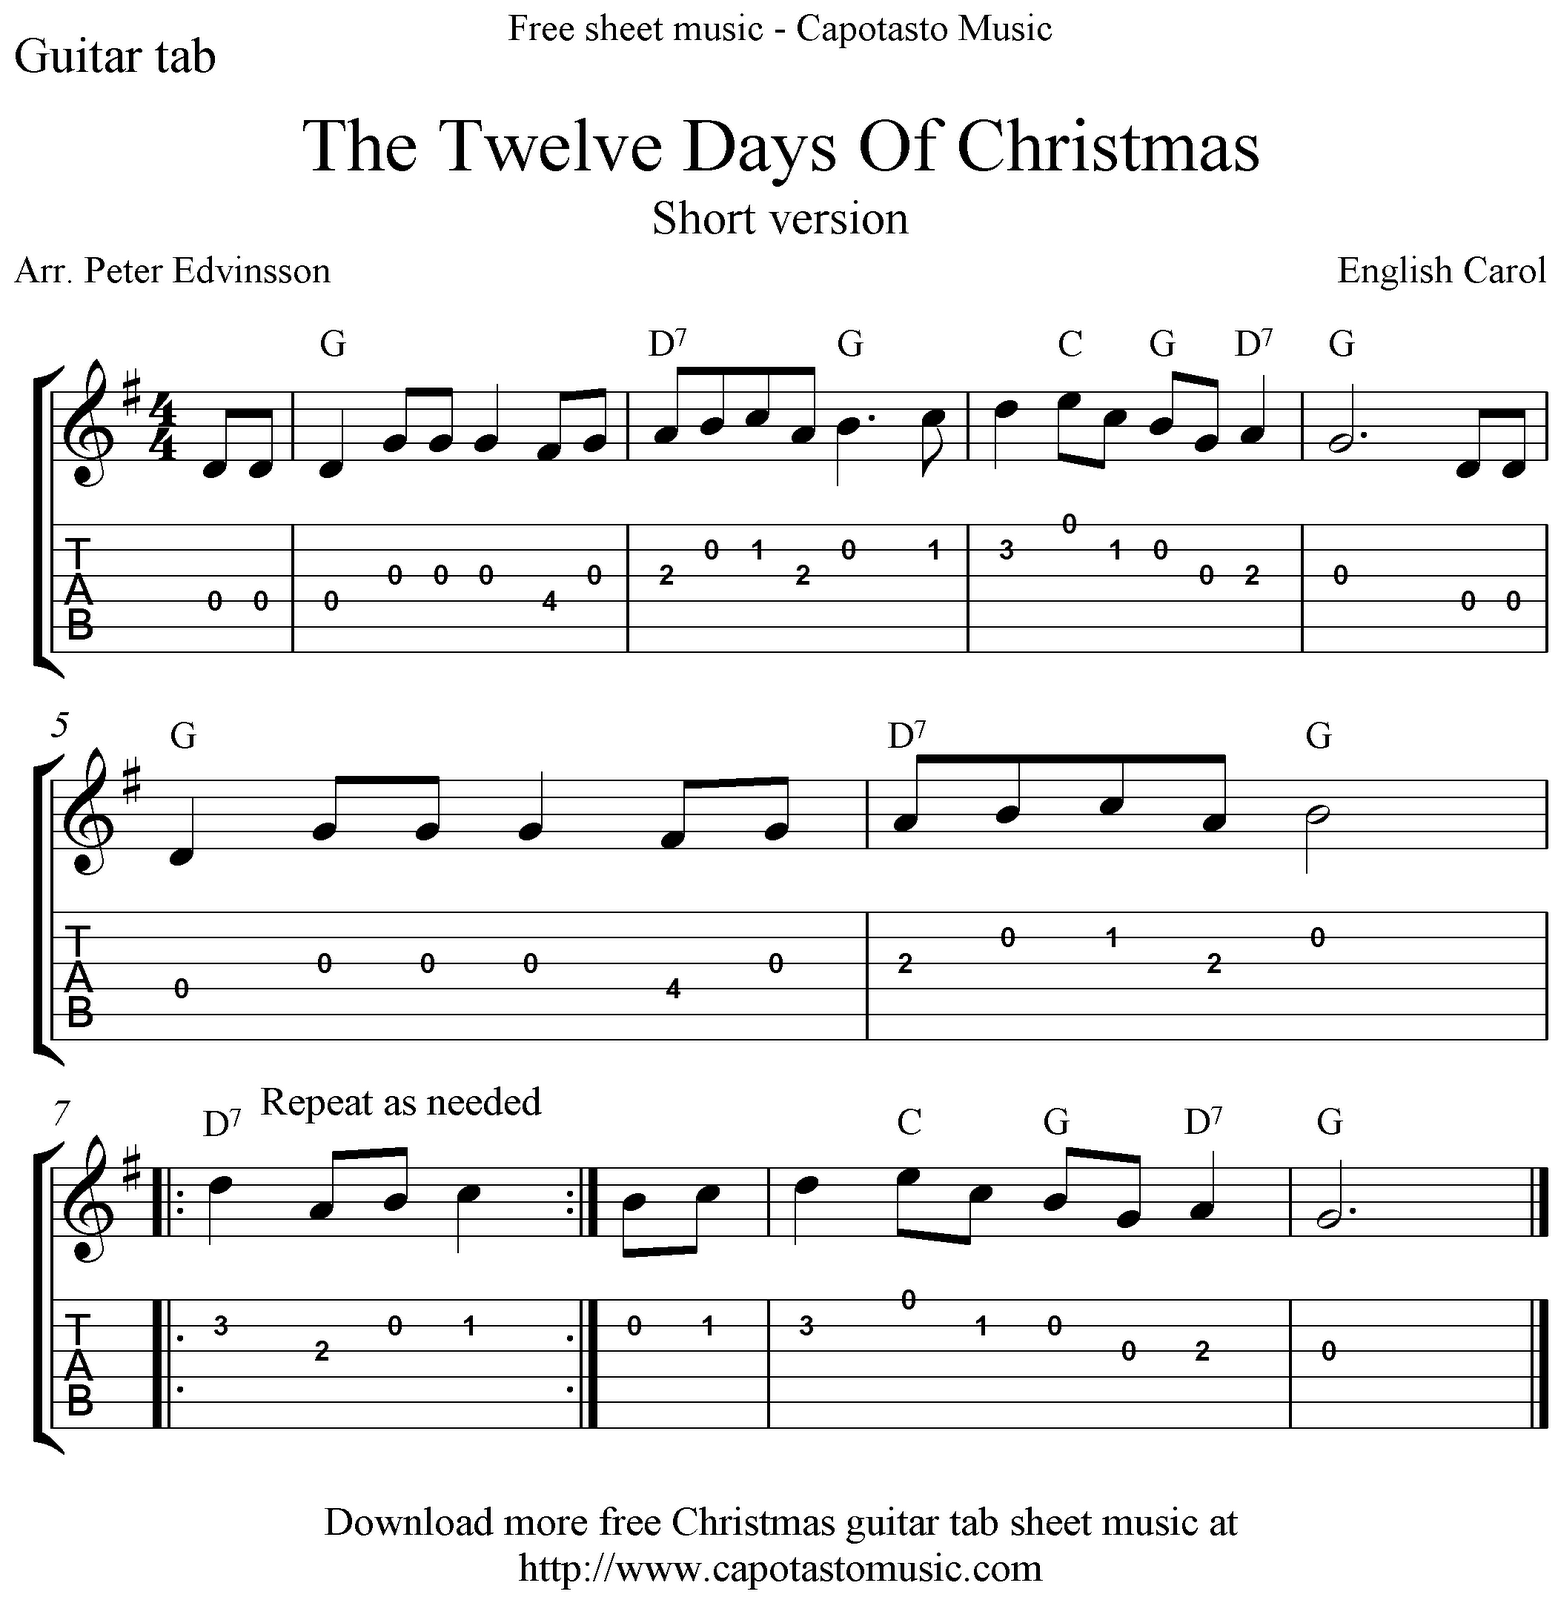 12 Days Of Christmas Sheet Music.The Twelve Days Of Christmas Free Guitar Tablature Sheet Music